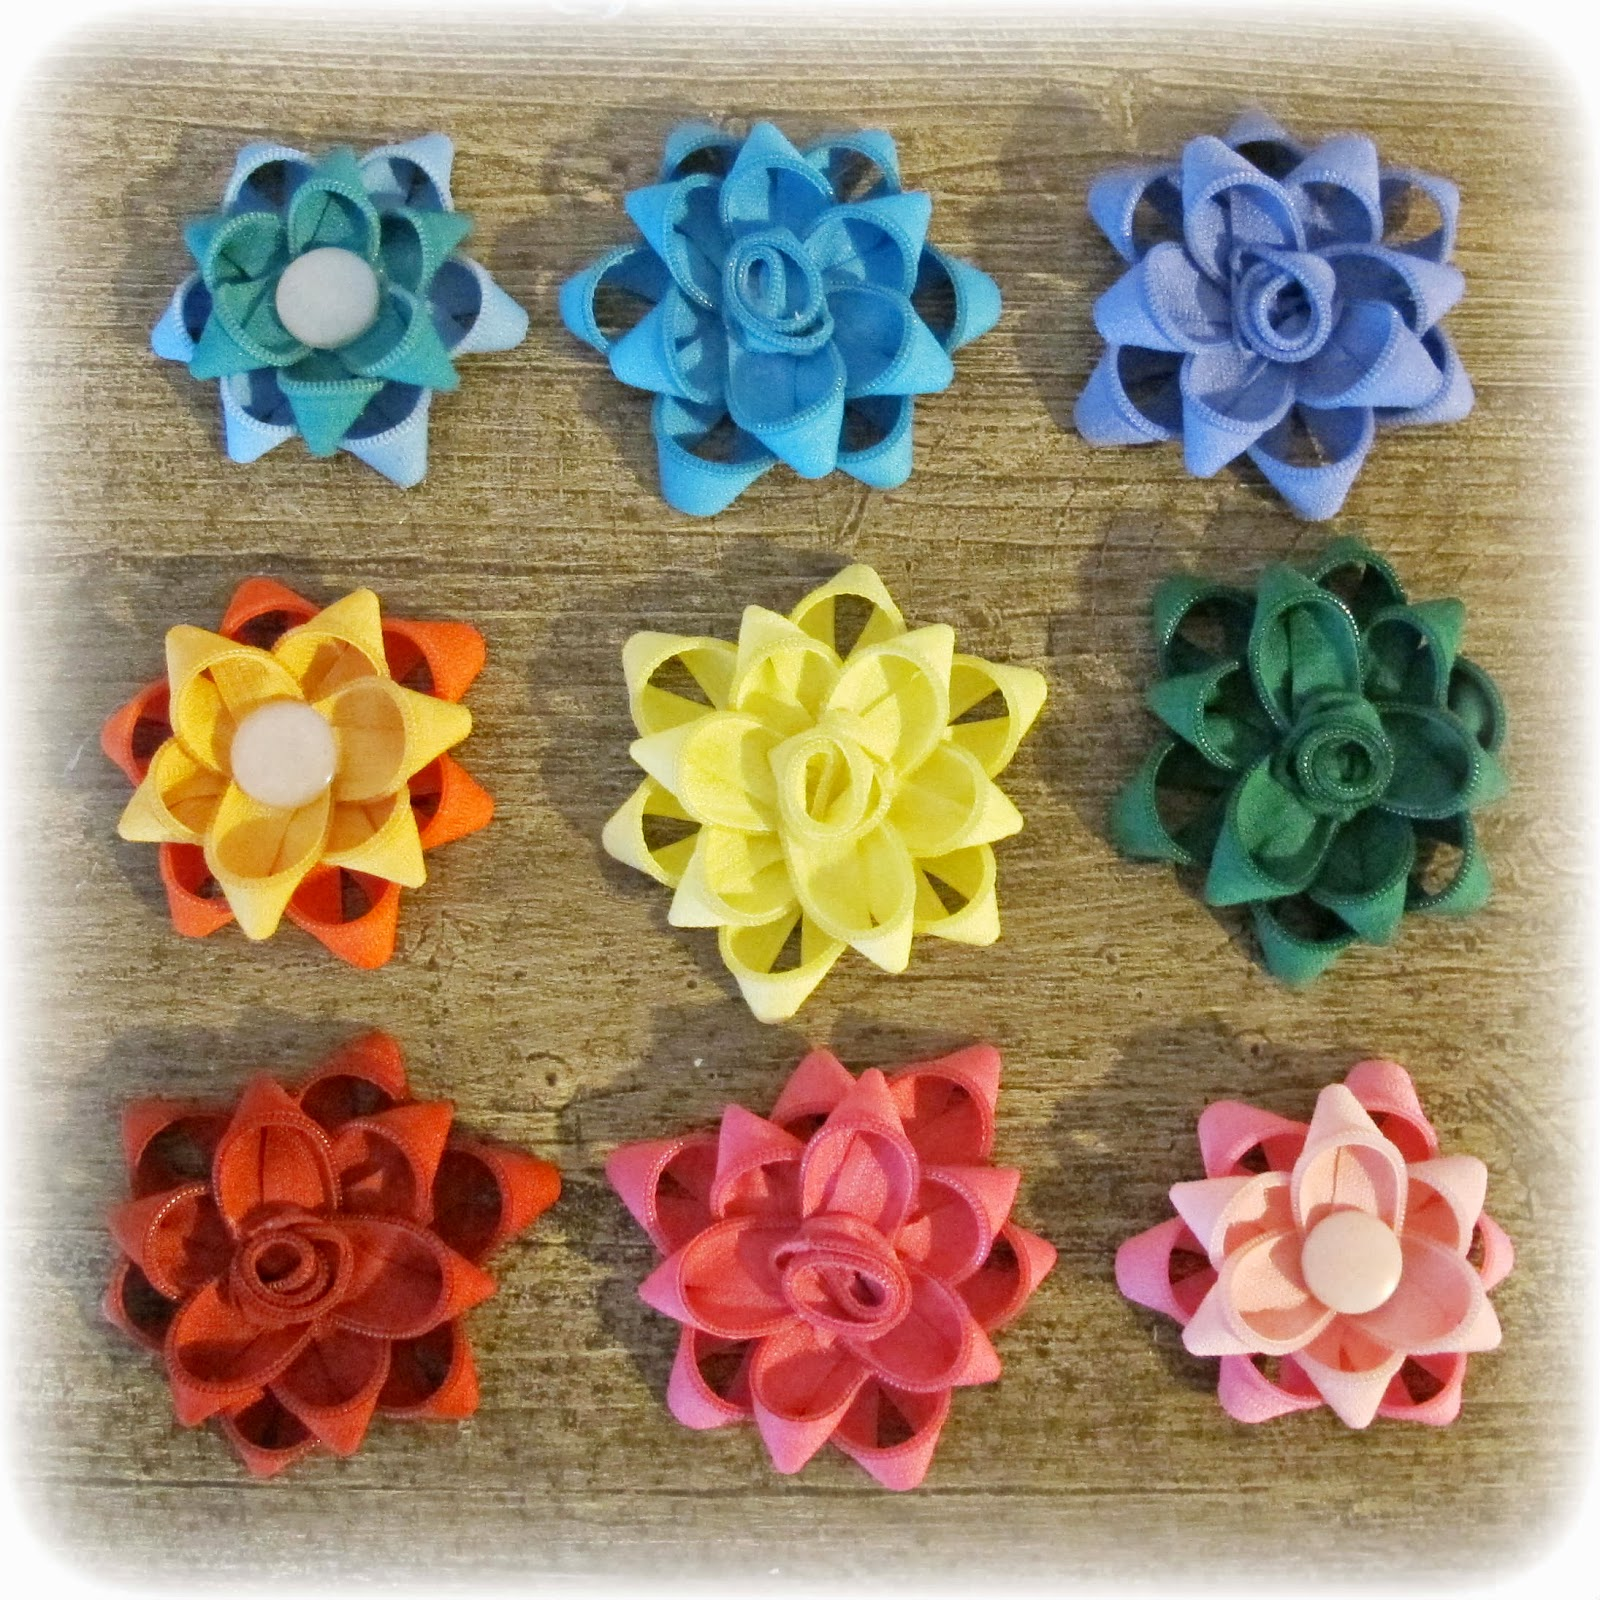 image zipper flowers upcycled recycled